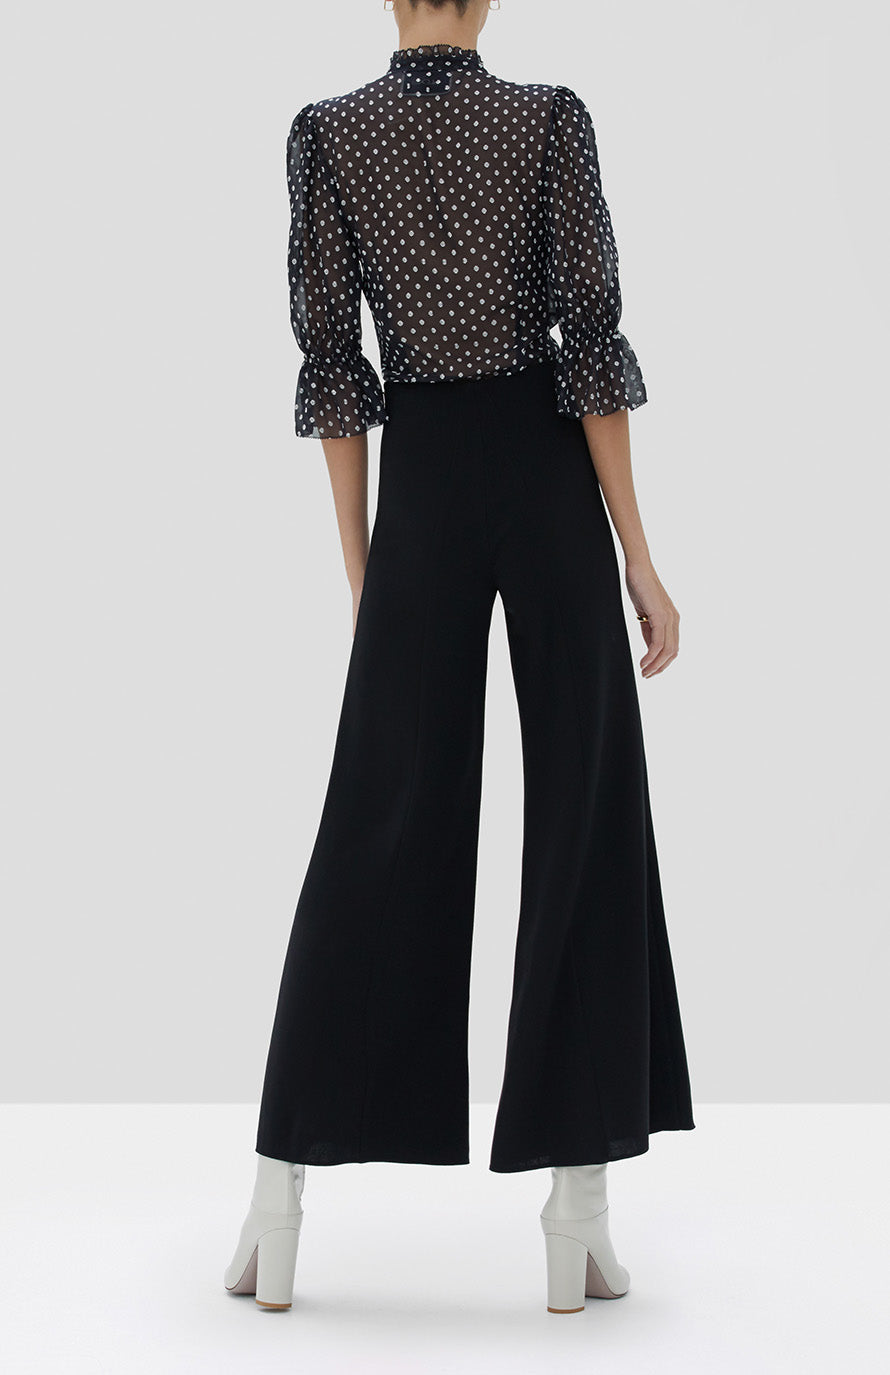 Alexis Calixte Top in Black Embroidered Dot and Ashden Pant in Black from the Fall Winter 2019 Ready To Wear Collection - Rear View